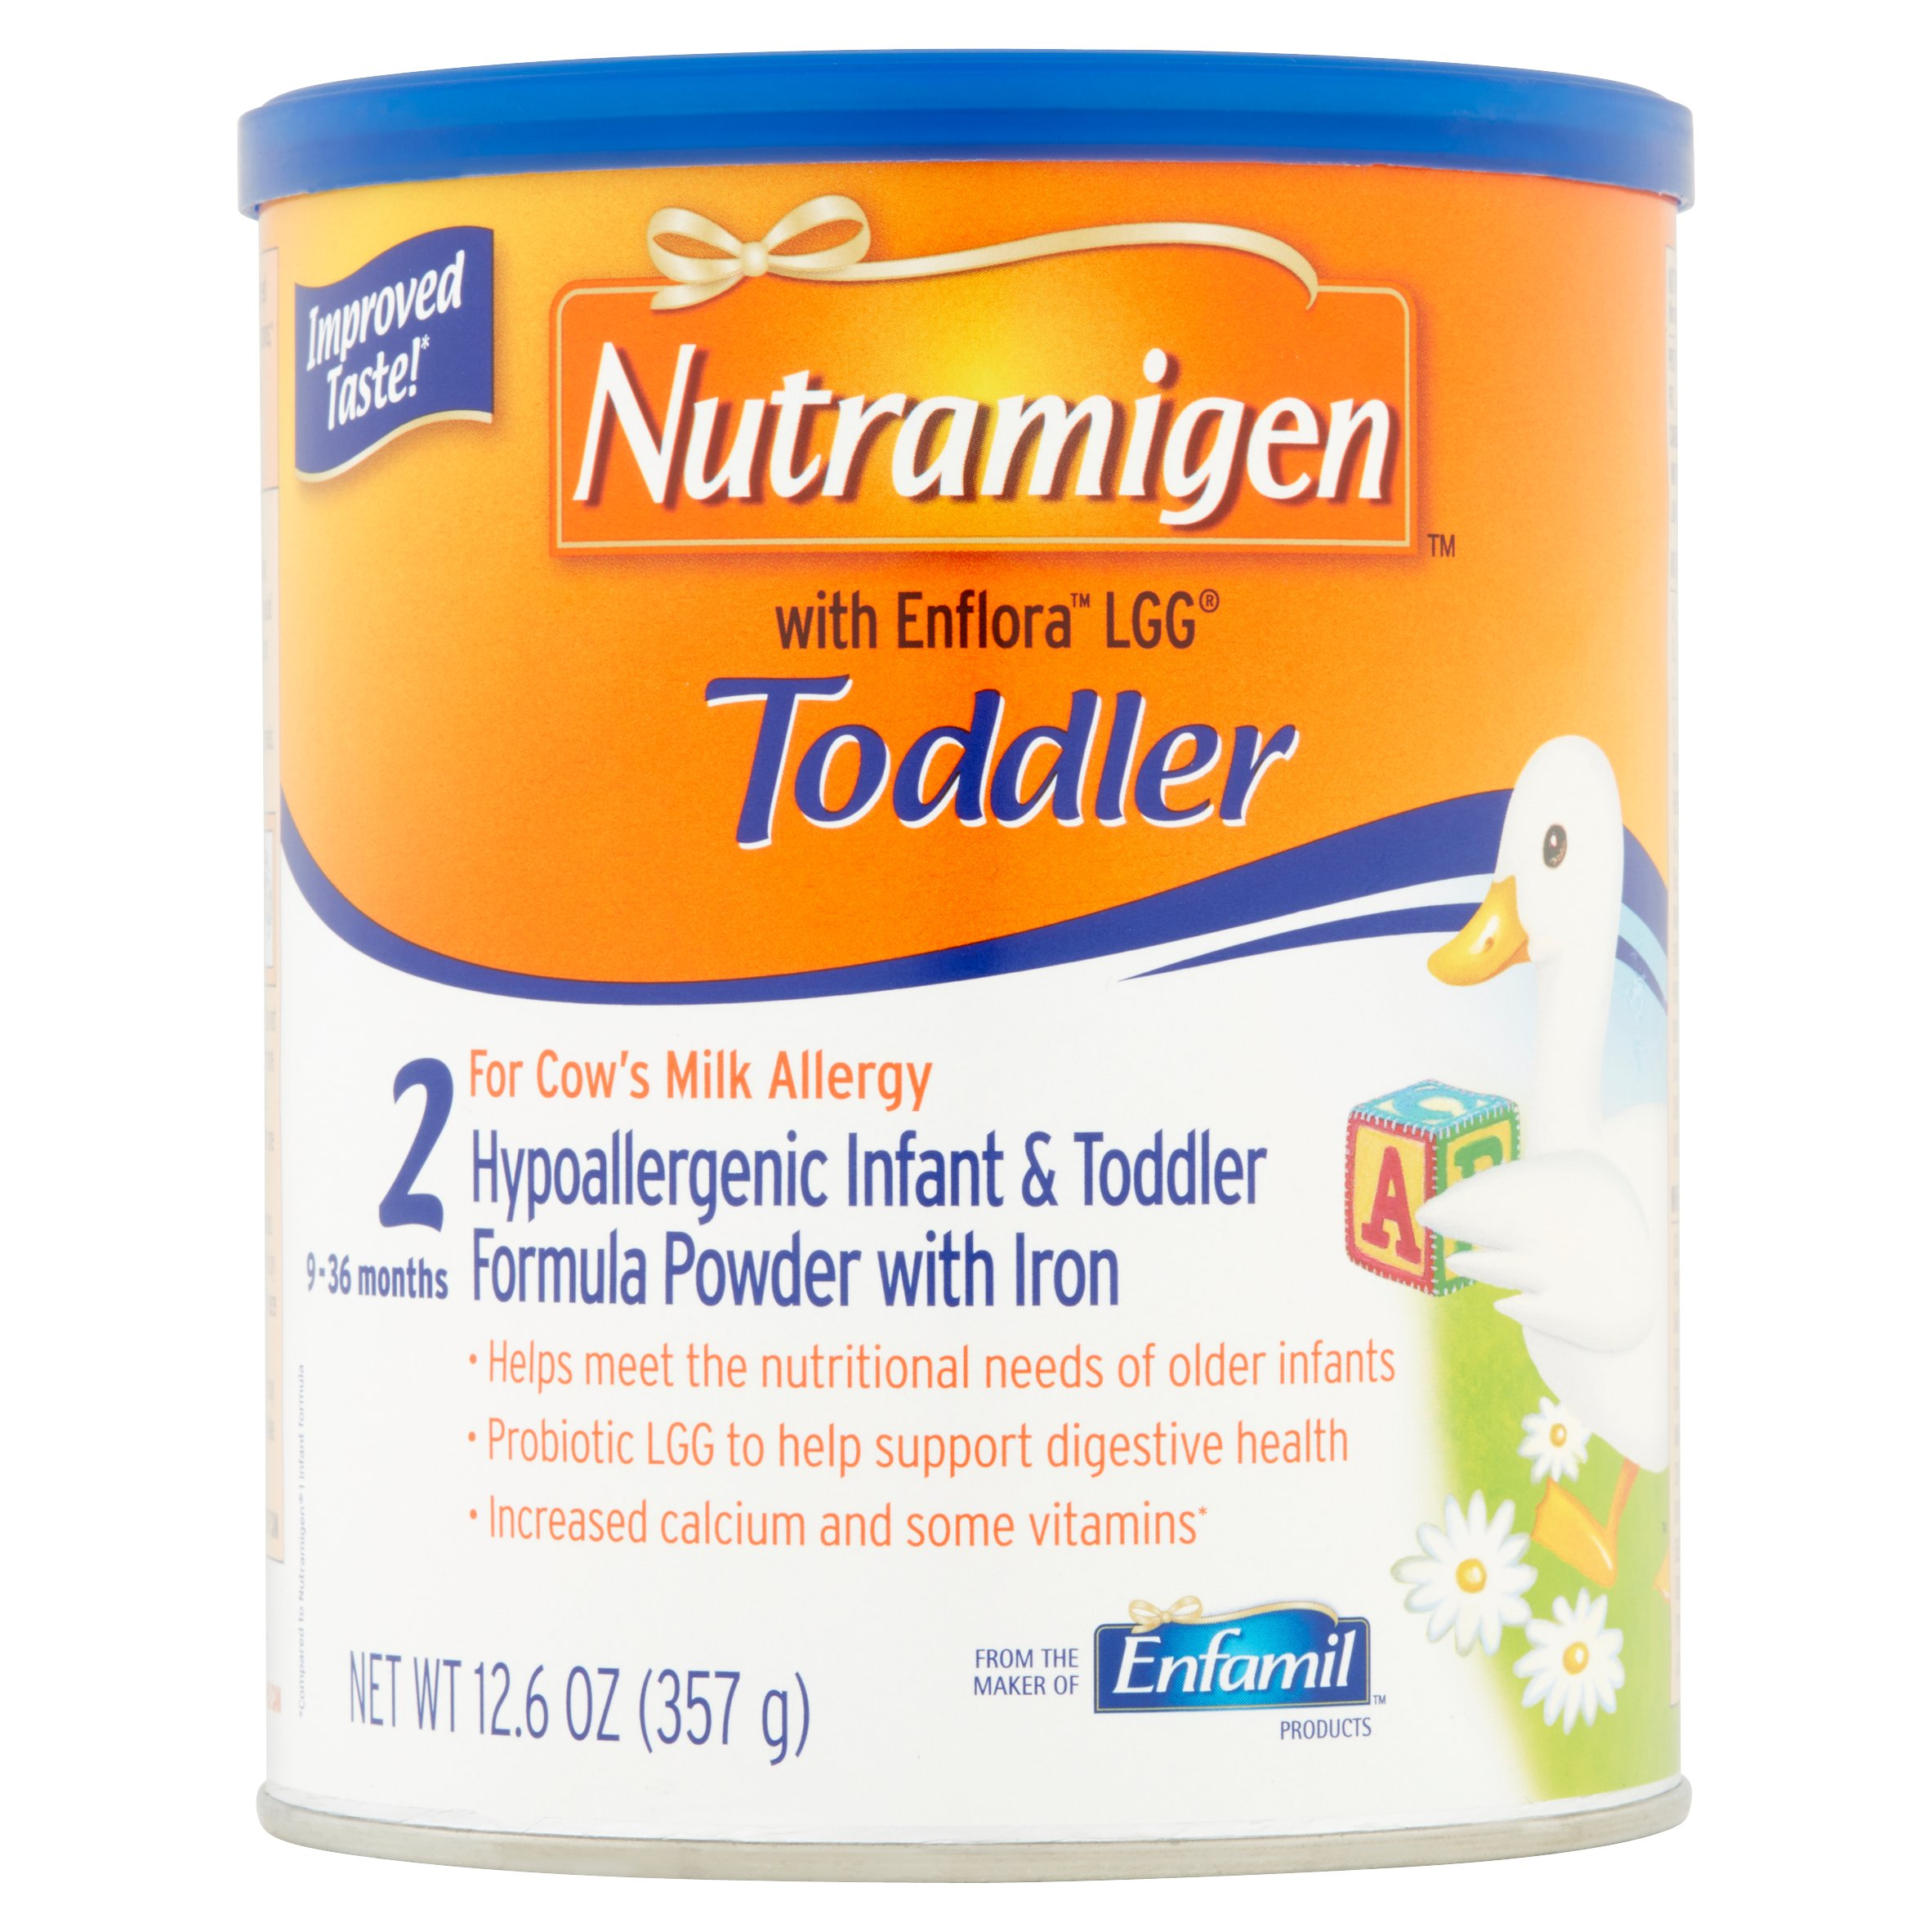 Nutramigen Hypoallergenic Toddler Formula (6 Cans) with Enflora LGG Powder, 12.6 oz Cans by nutramigen